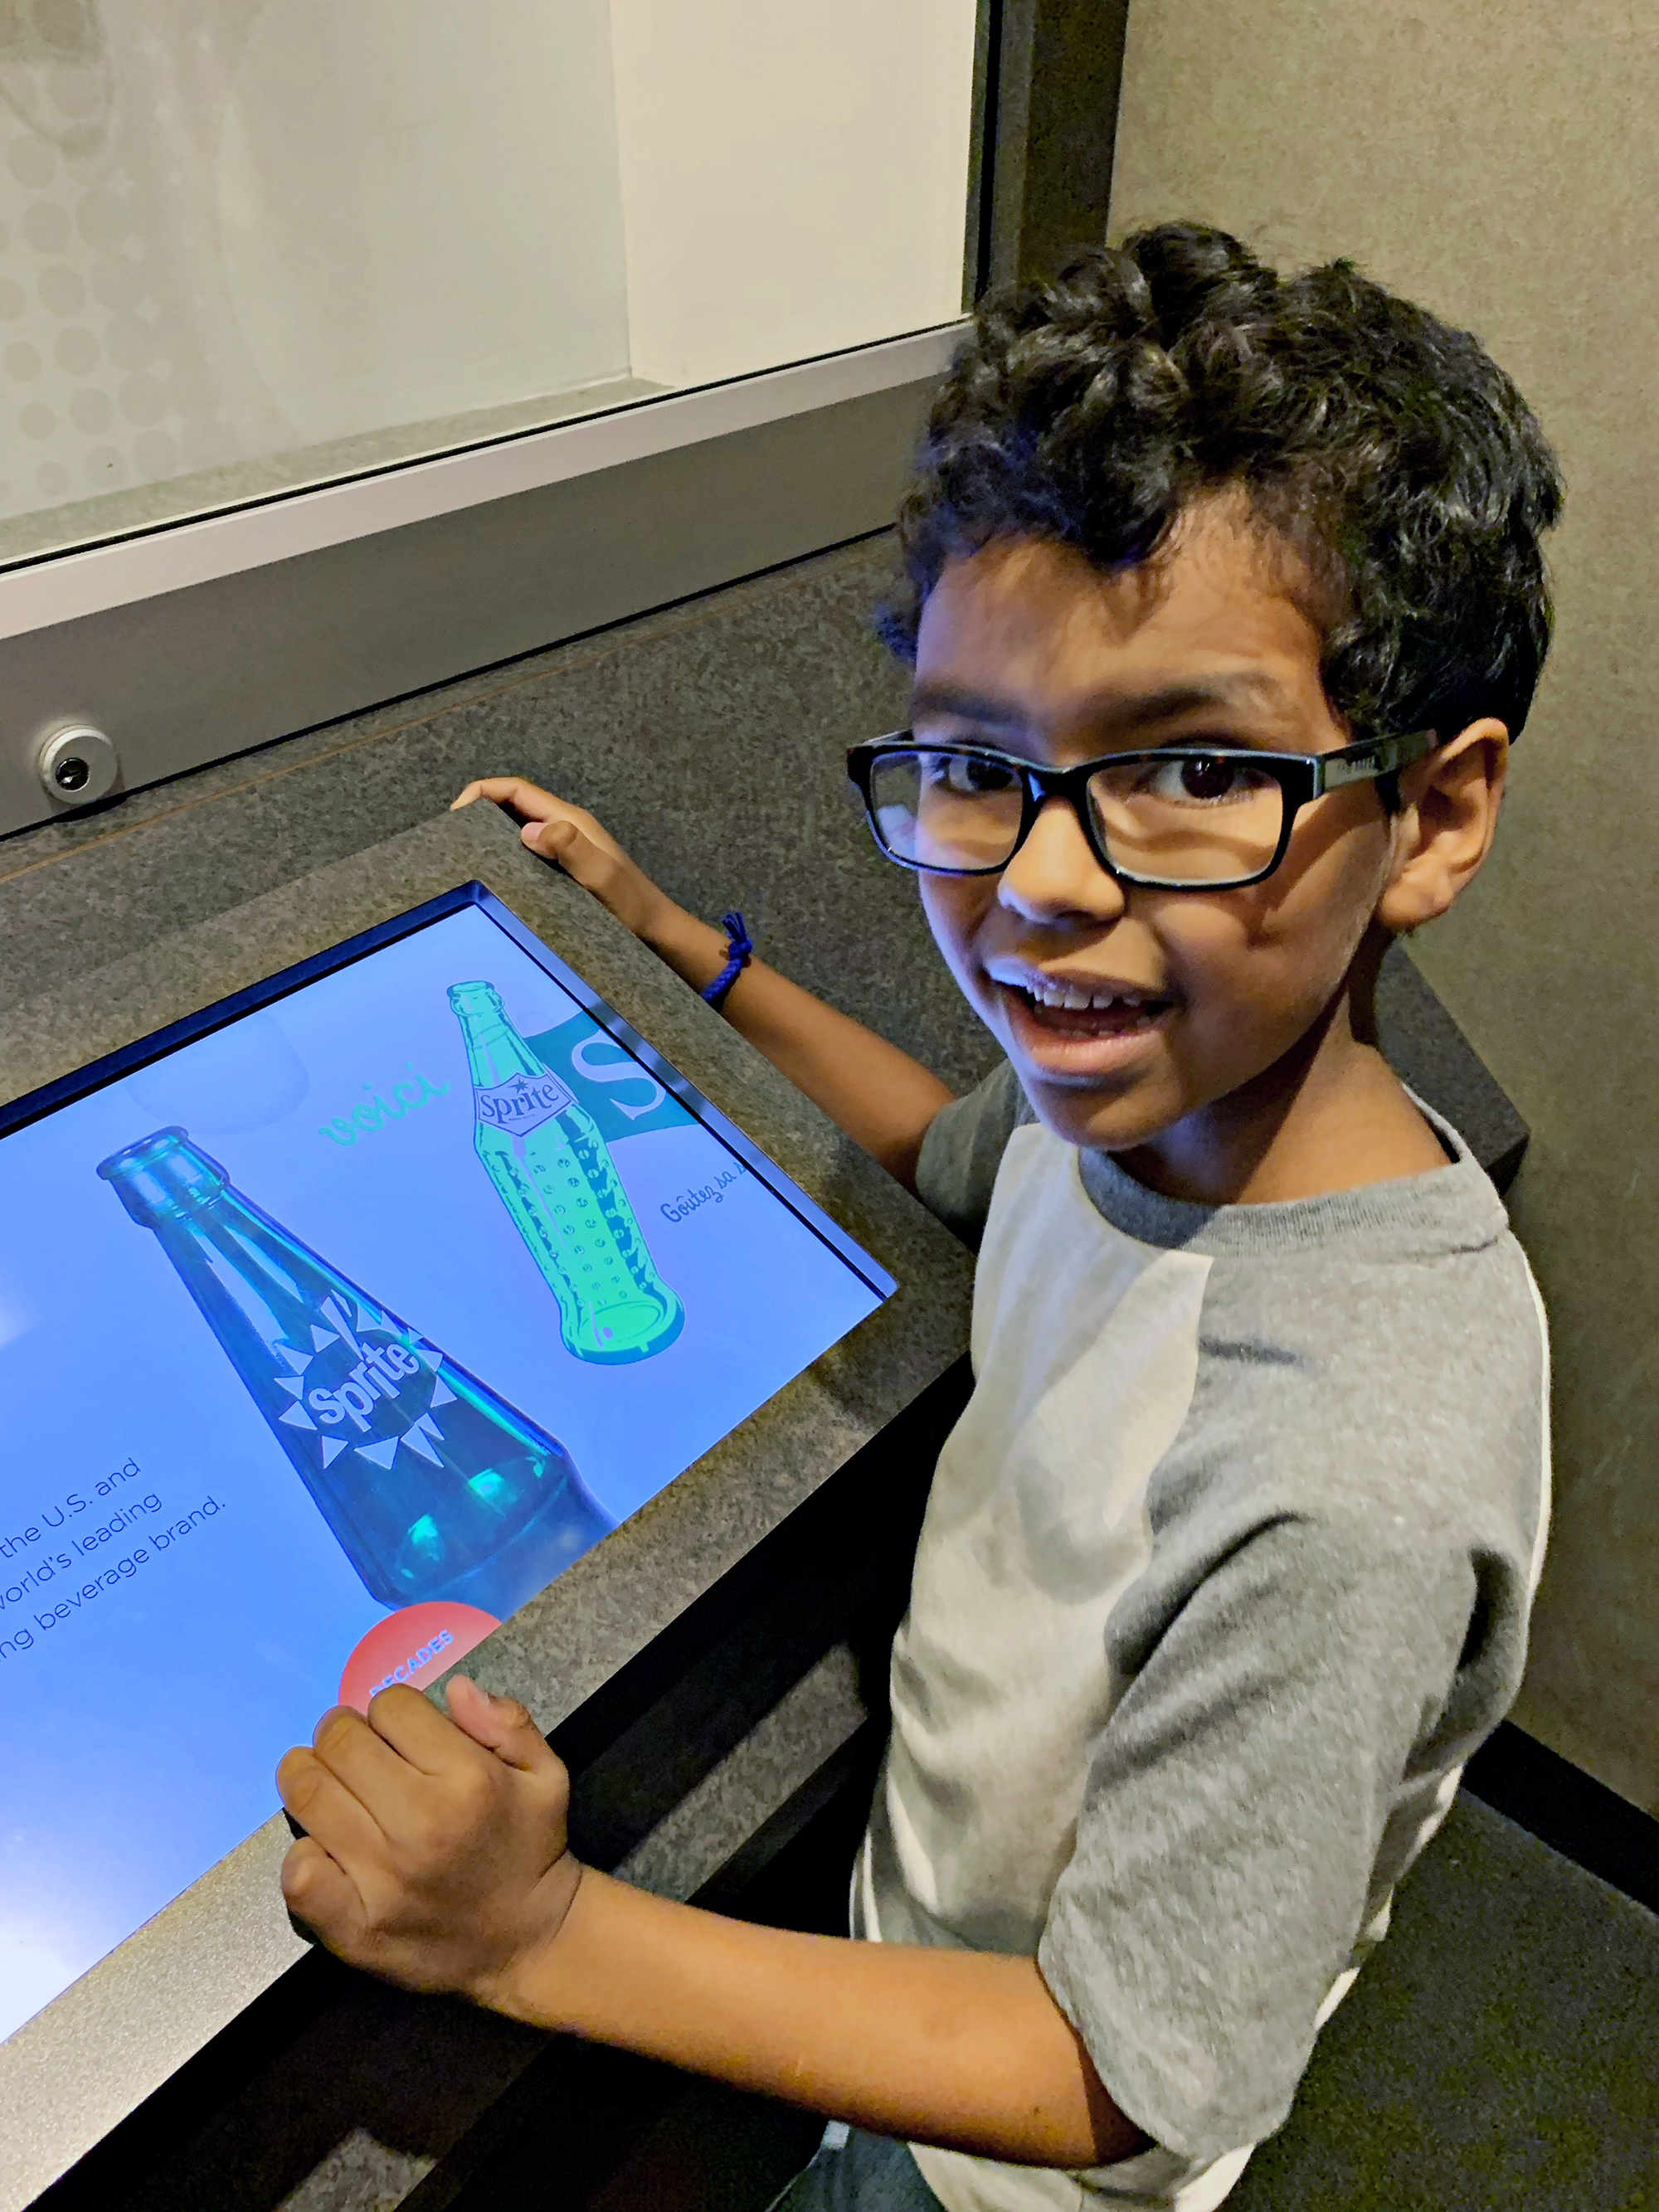 lots of fun hands on activities for kids at World of Coca-Cola